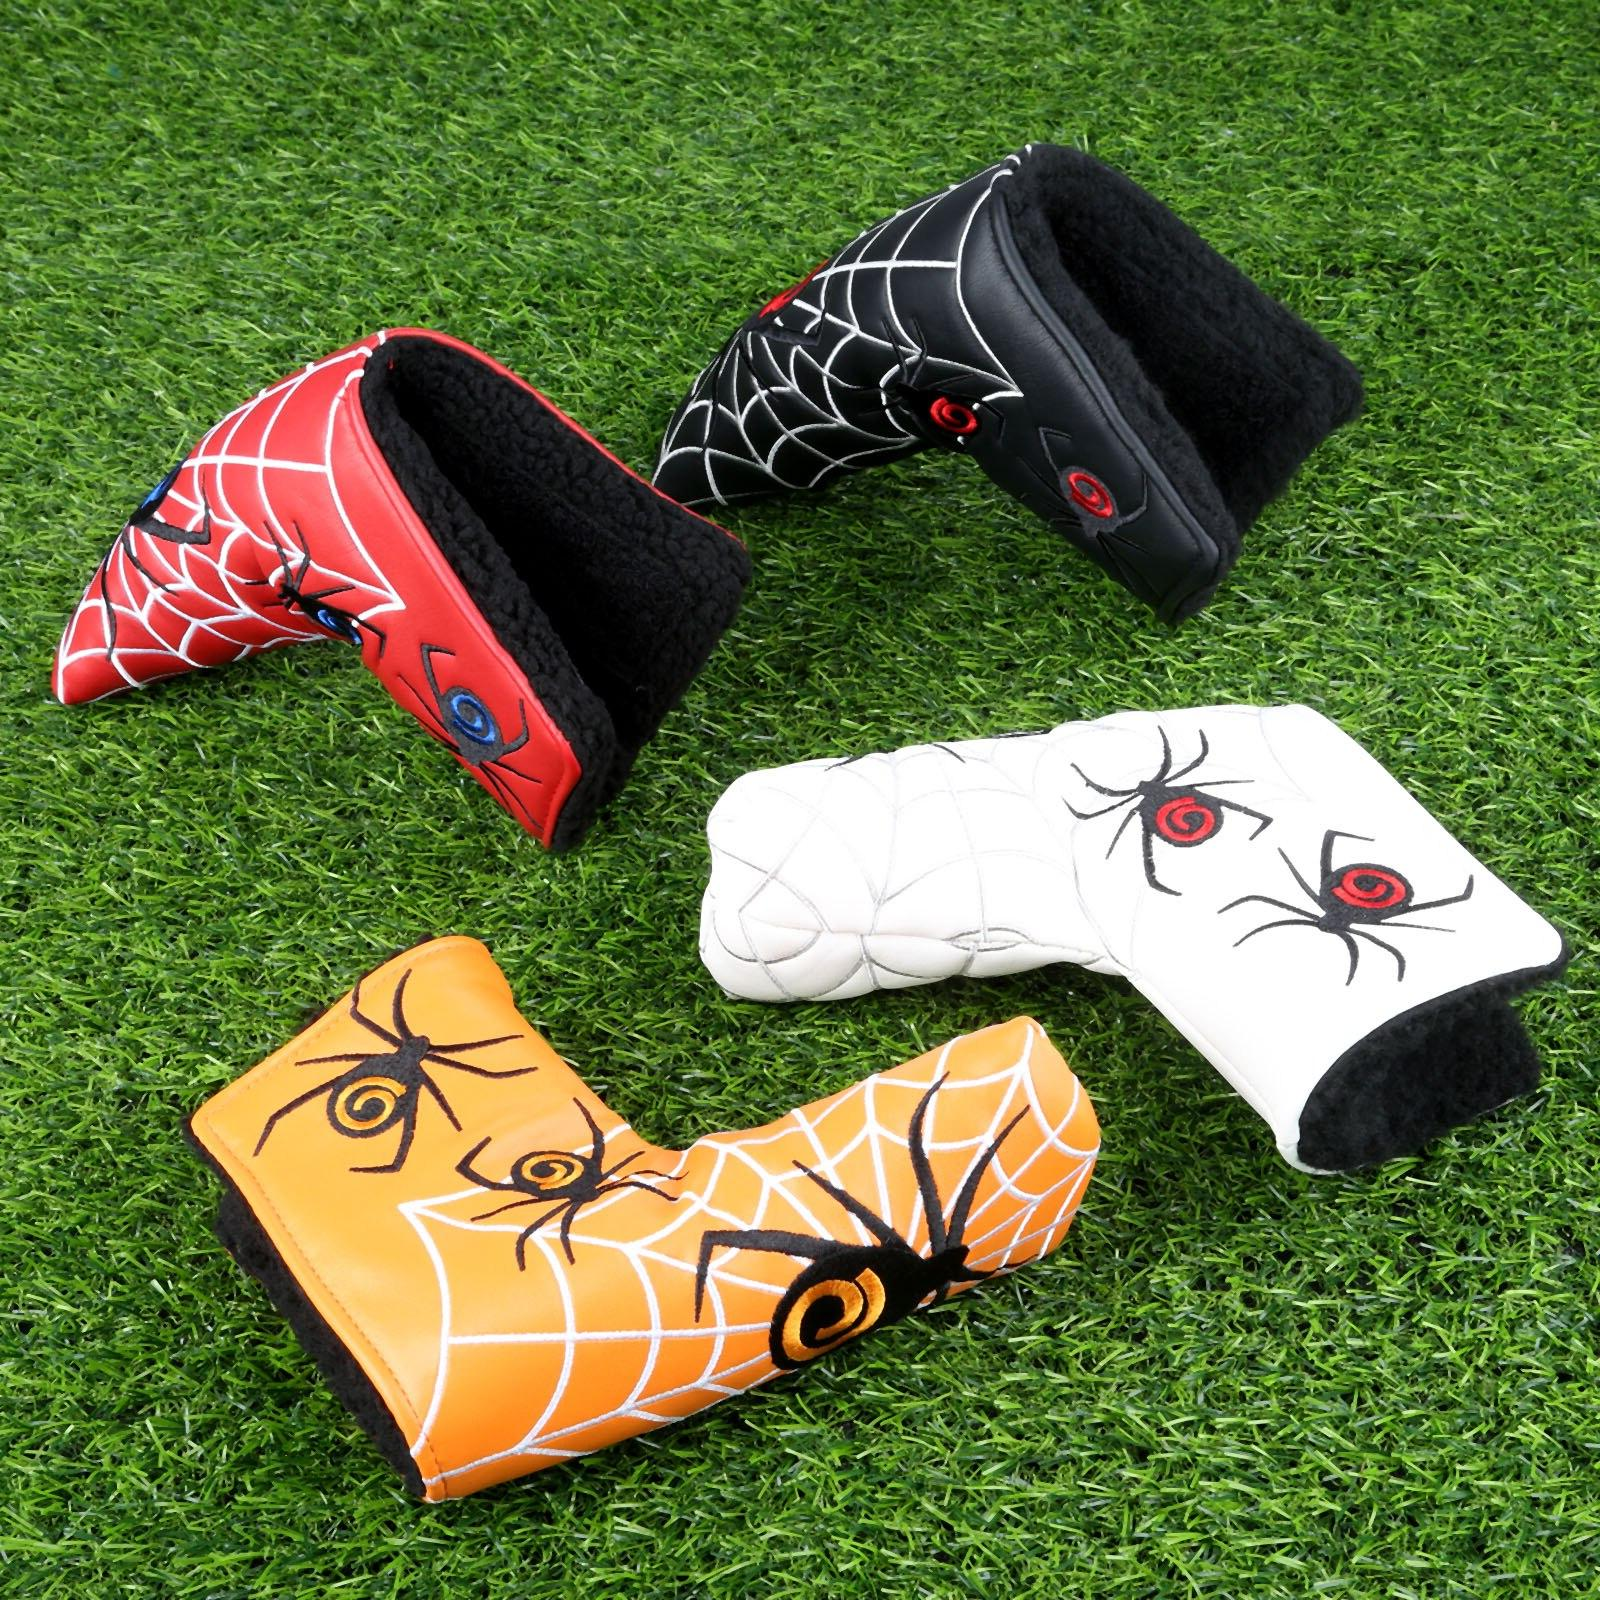 Spider Silver Golf Putter Cover <font><b>Headcover</b></font> Covers <font><b>Odyssey</b></font>